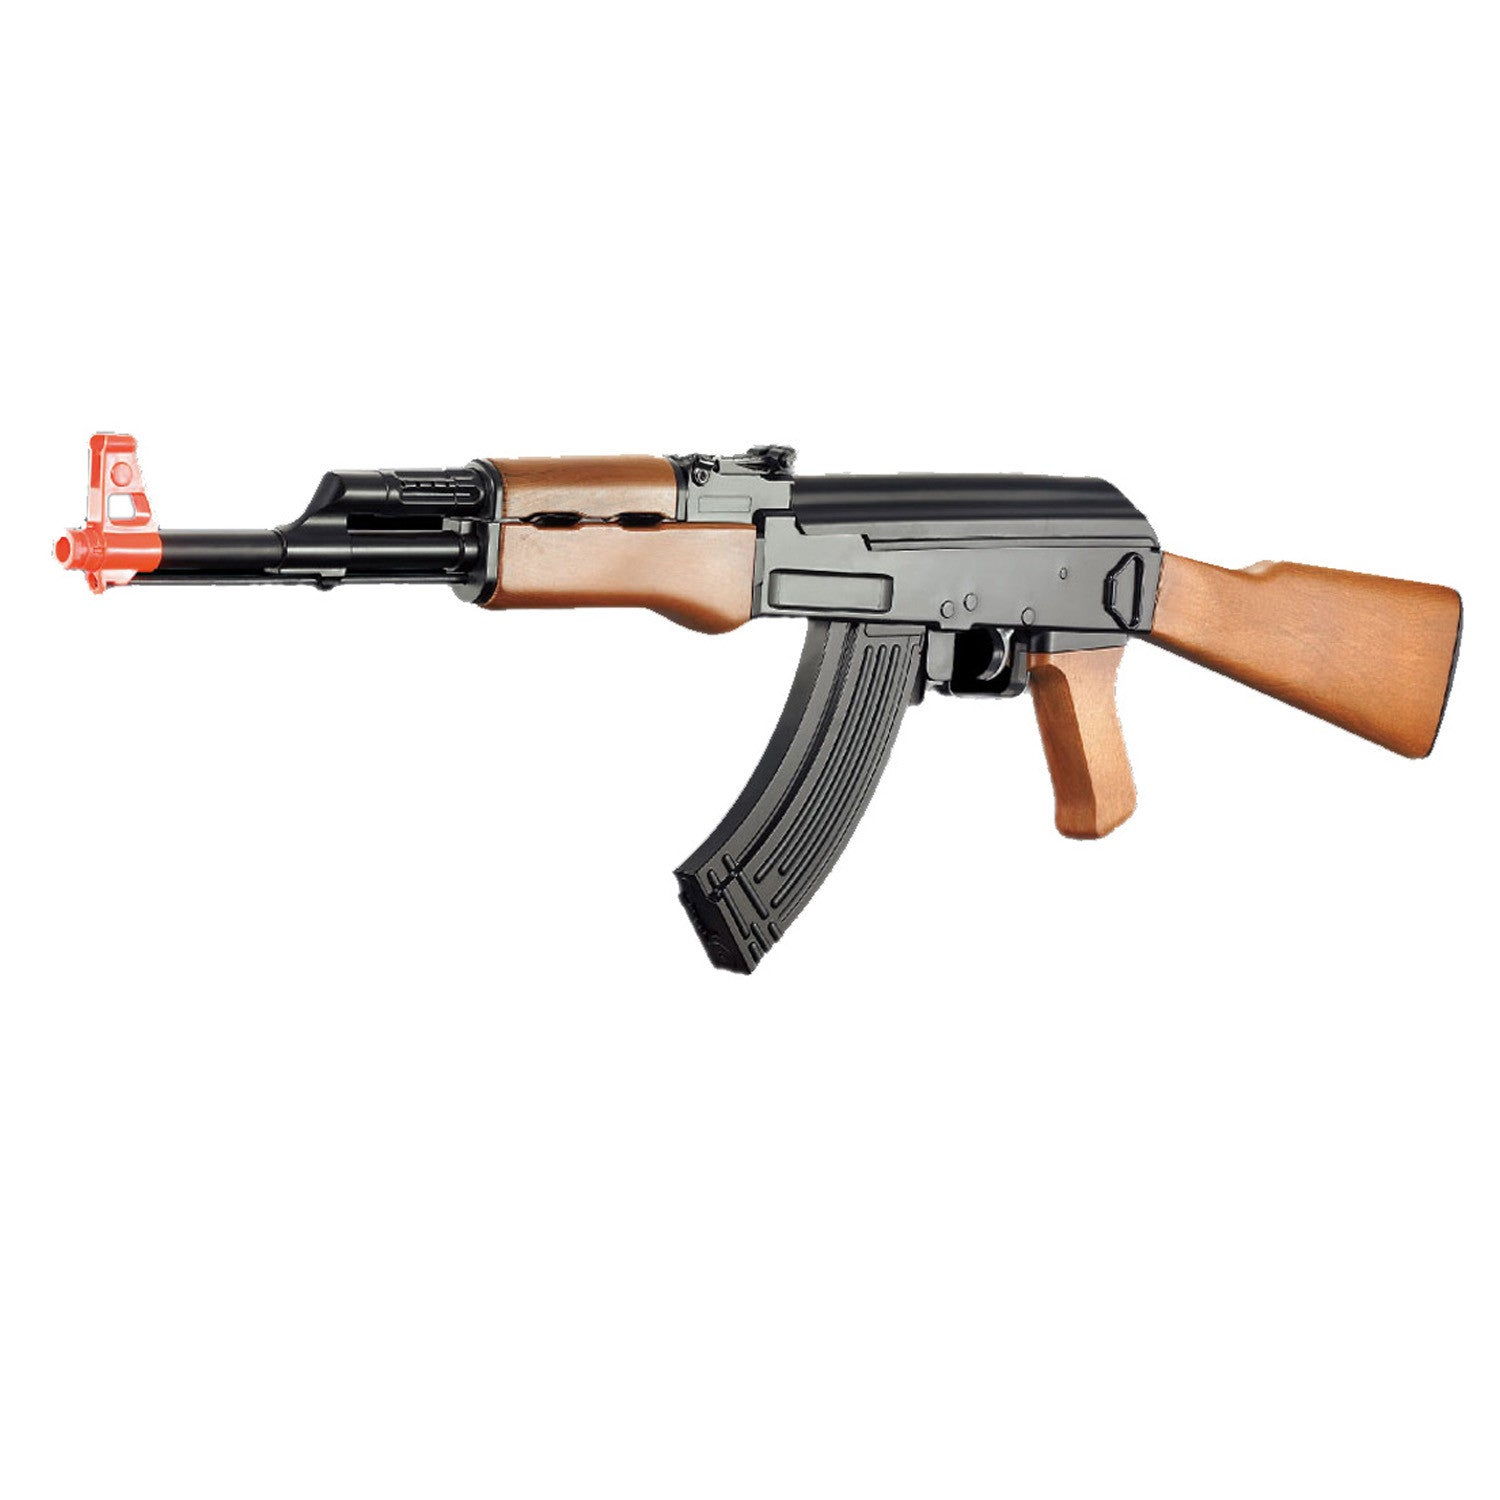 Cyma Plastic Gearbox AK47 - Full, semi, and safe capable.  -Exact replica.  -Electric gearbox that can do 220 fps (.12g) without any upgrades.  -Simulated wood finish.